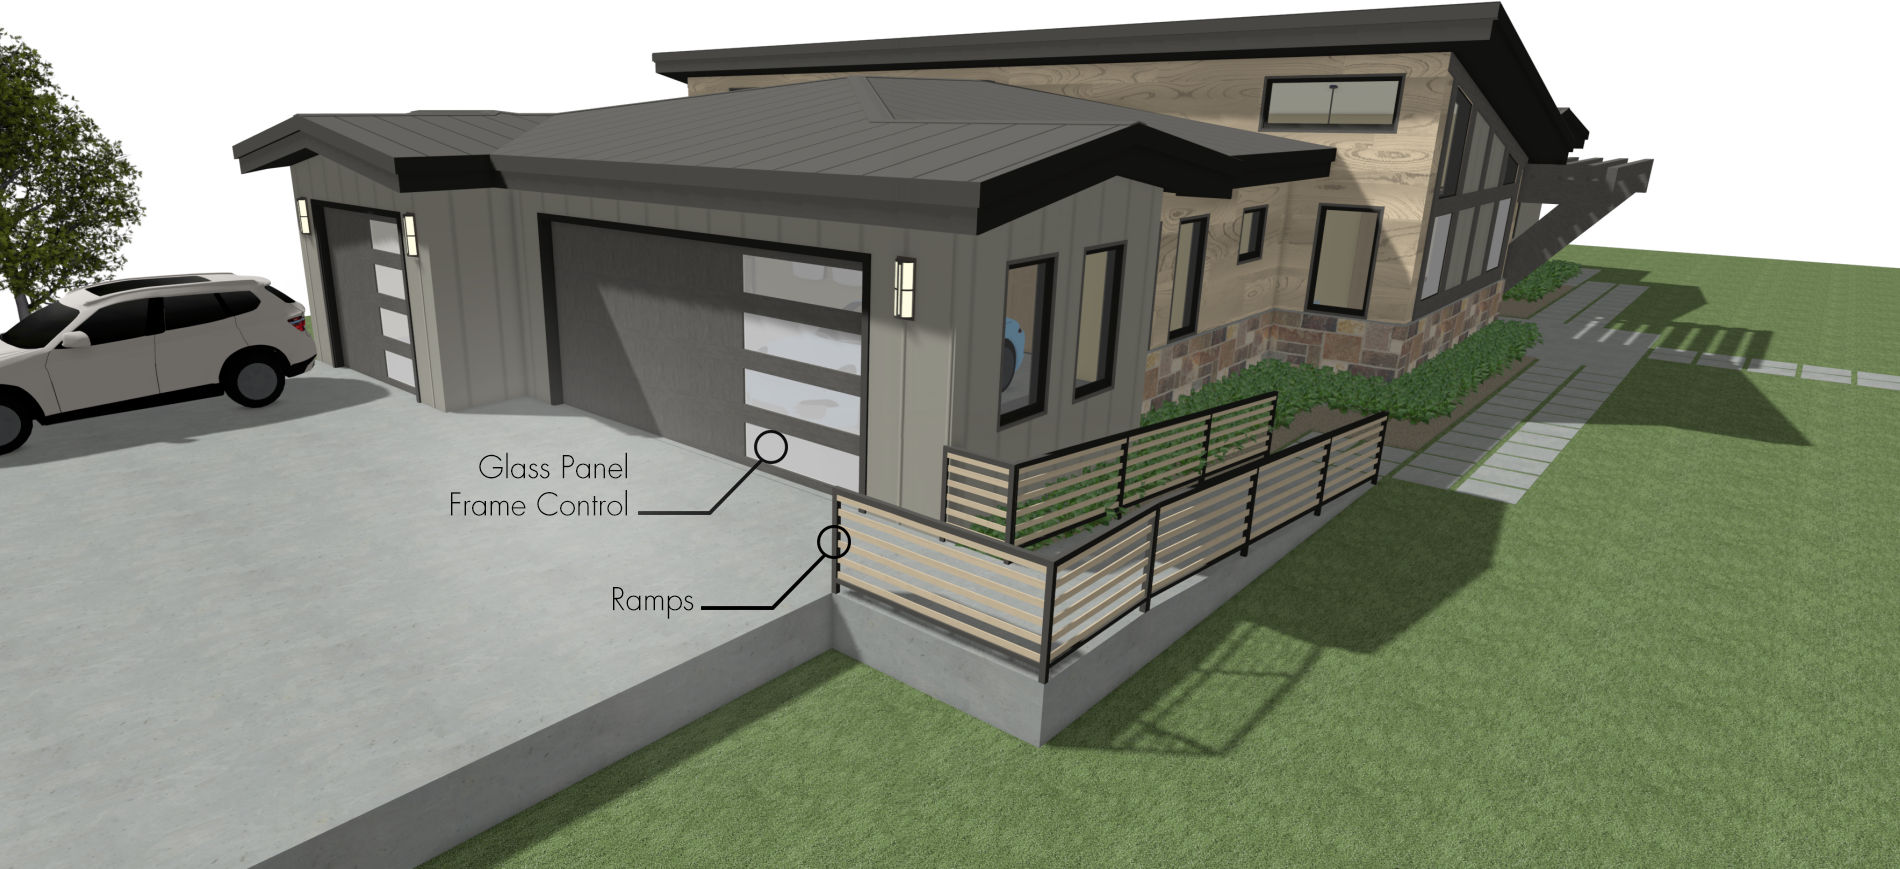 House rendering with asymmetric garage doors and ramp access.